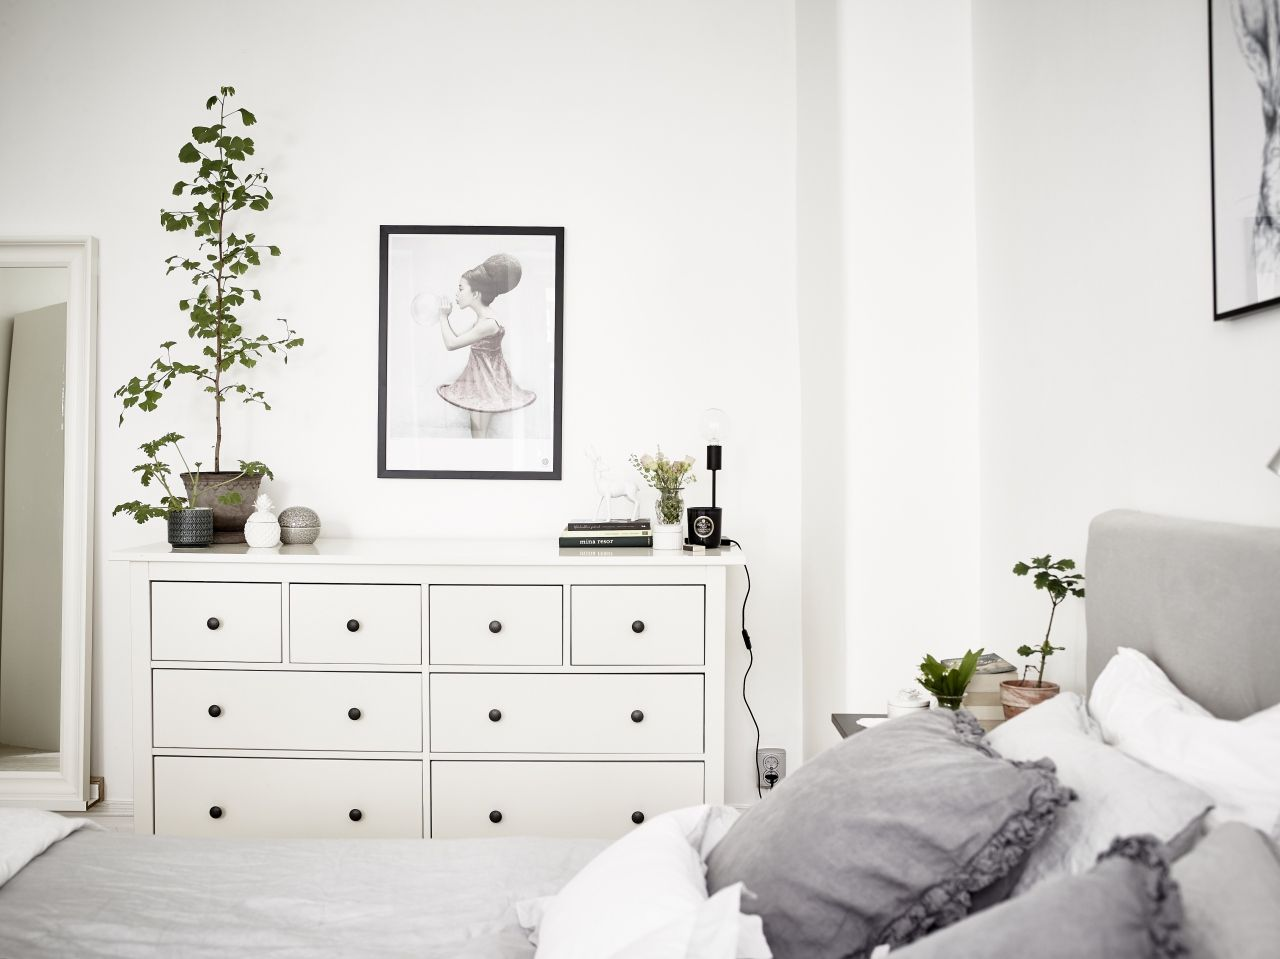 12 Best IKEA Interior Design Finds | Wolf, Interiors and Bedrooms